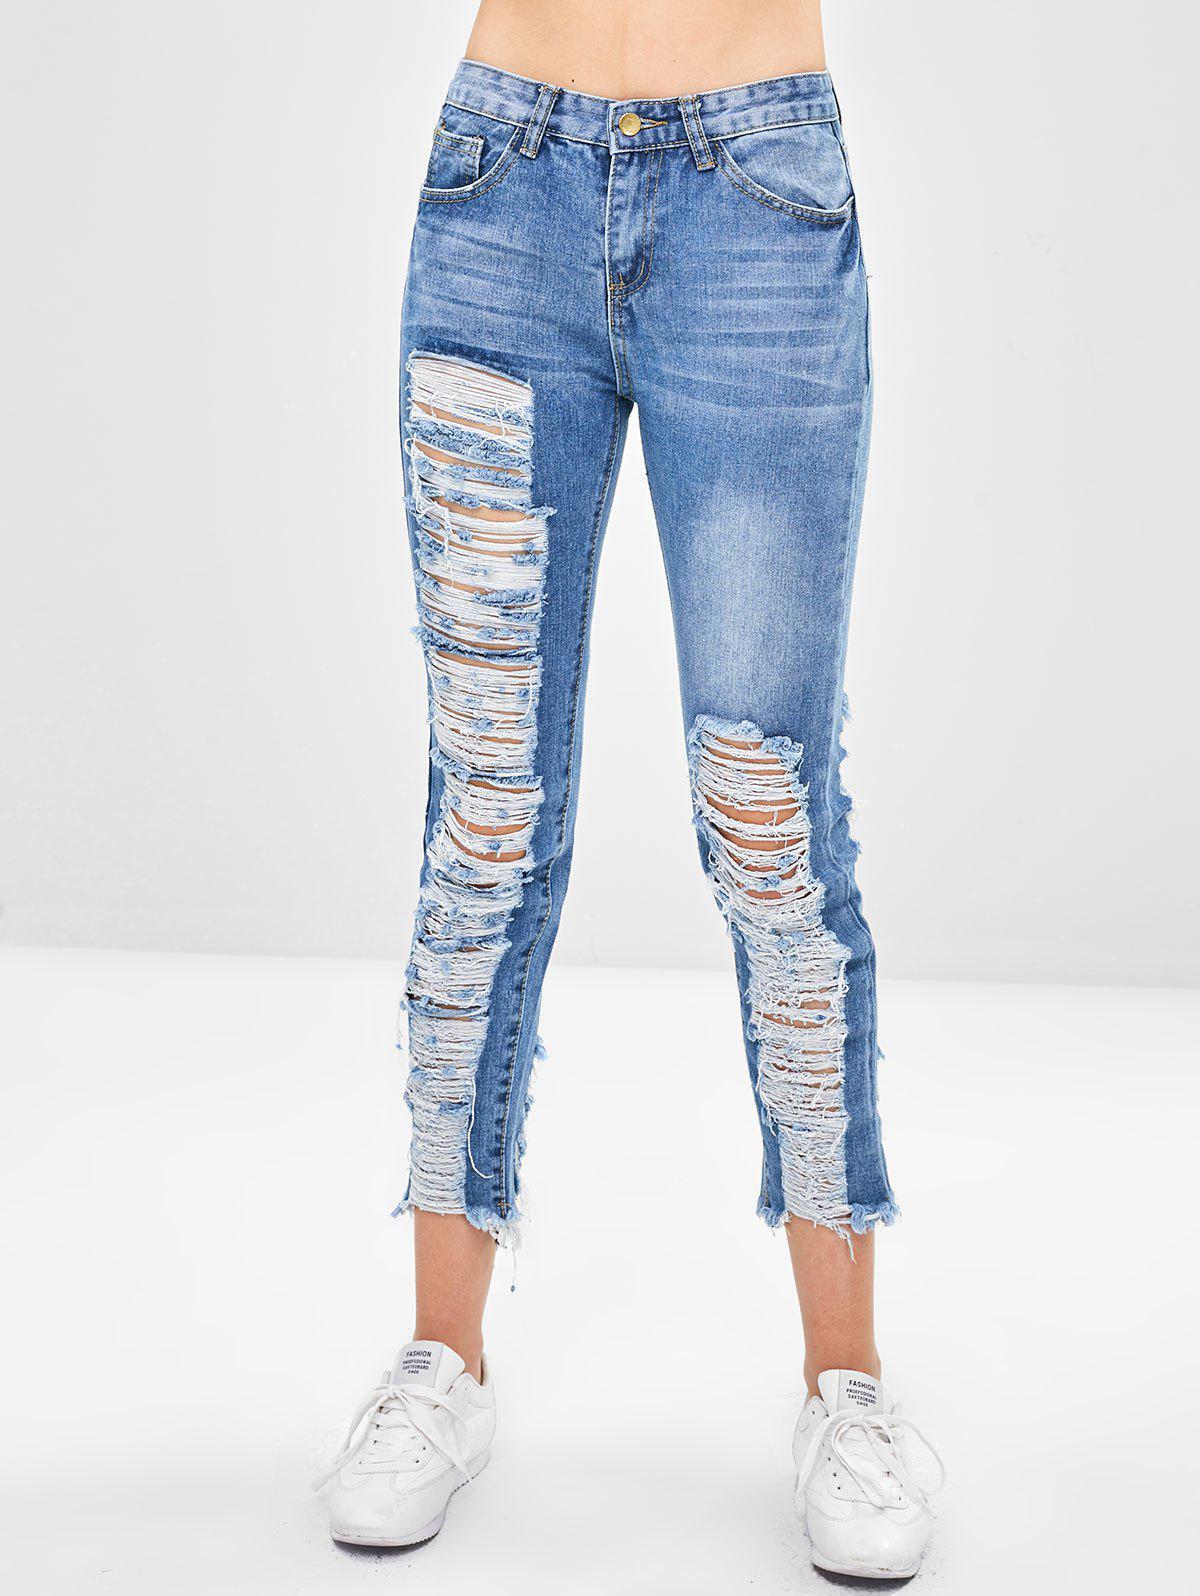 Middle Waist Ripped Jeans 316287703